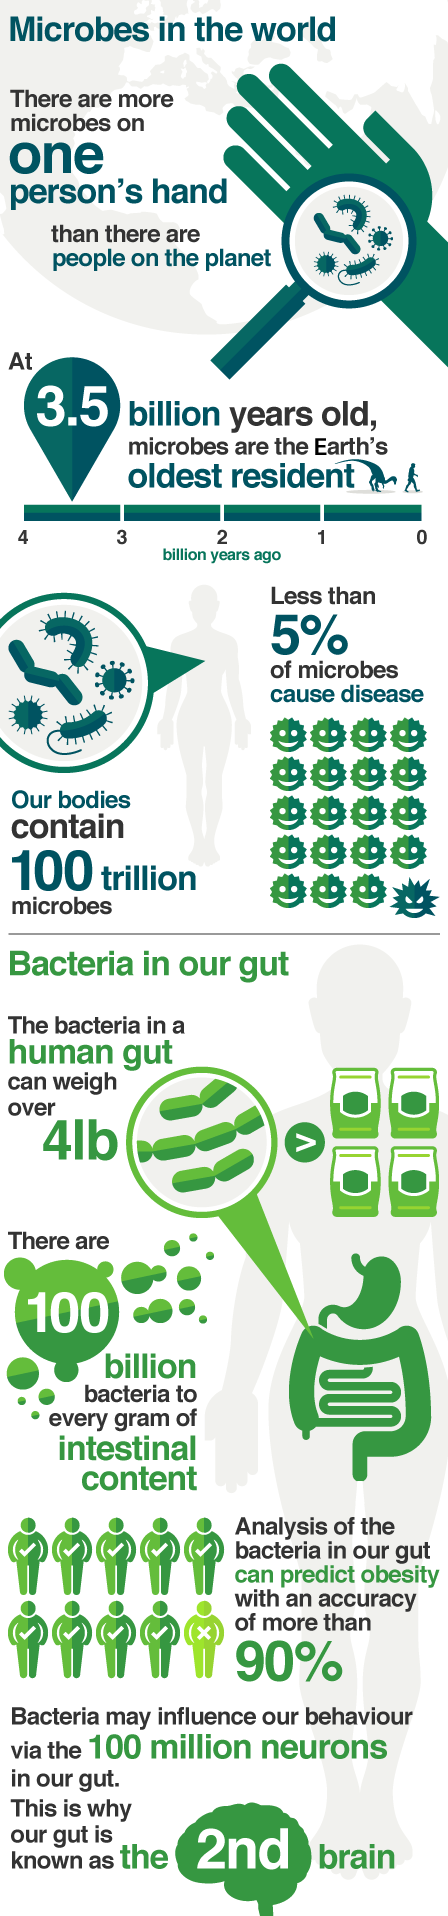 How microbes affect all aspects of our lives - from breathing to the food we eat.